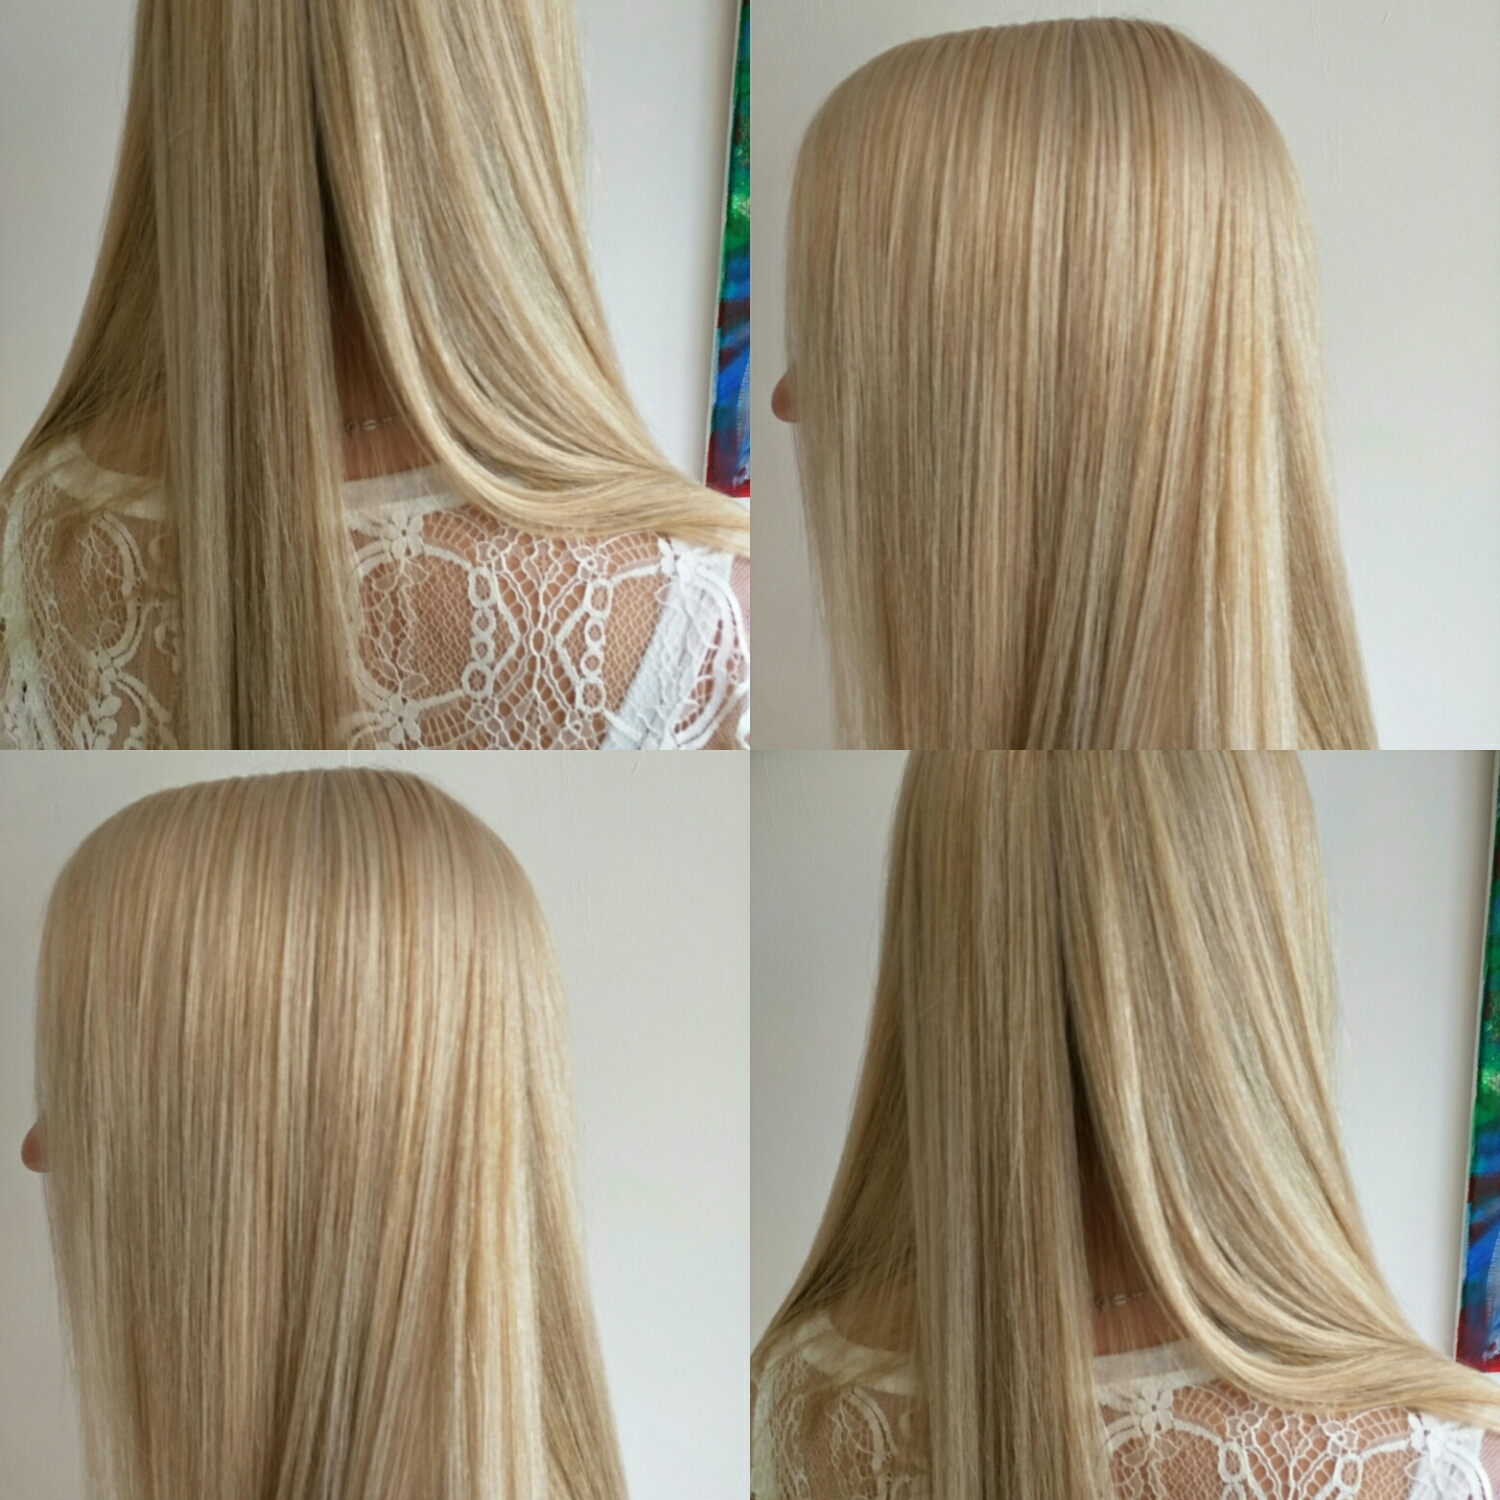 gorgeous full head Sassoon blonde we did the other day in salon.